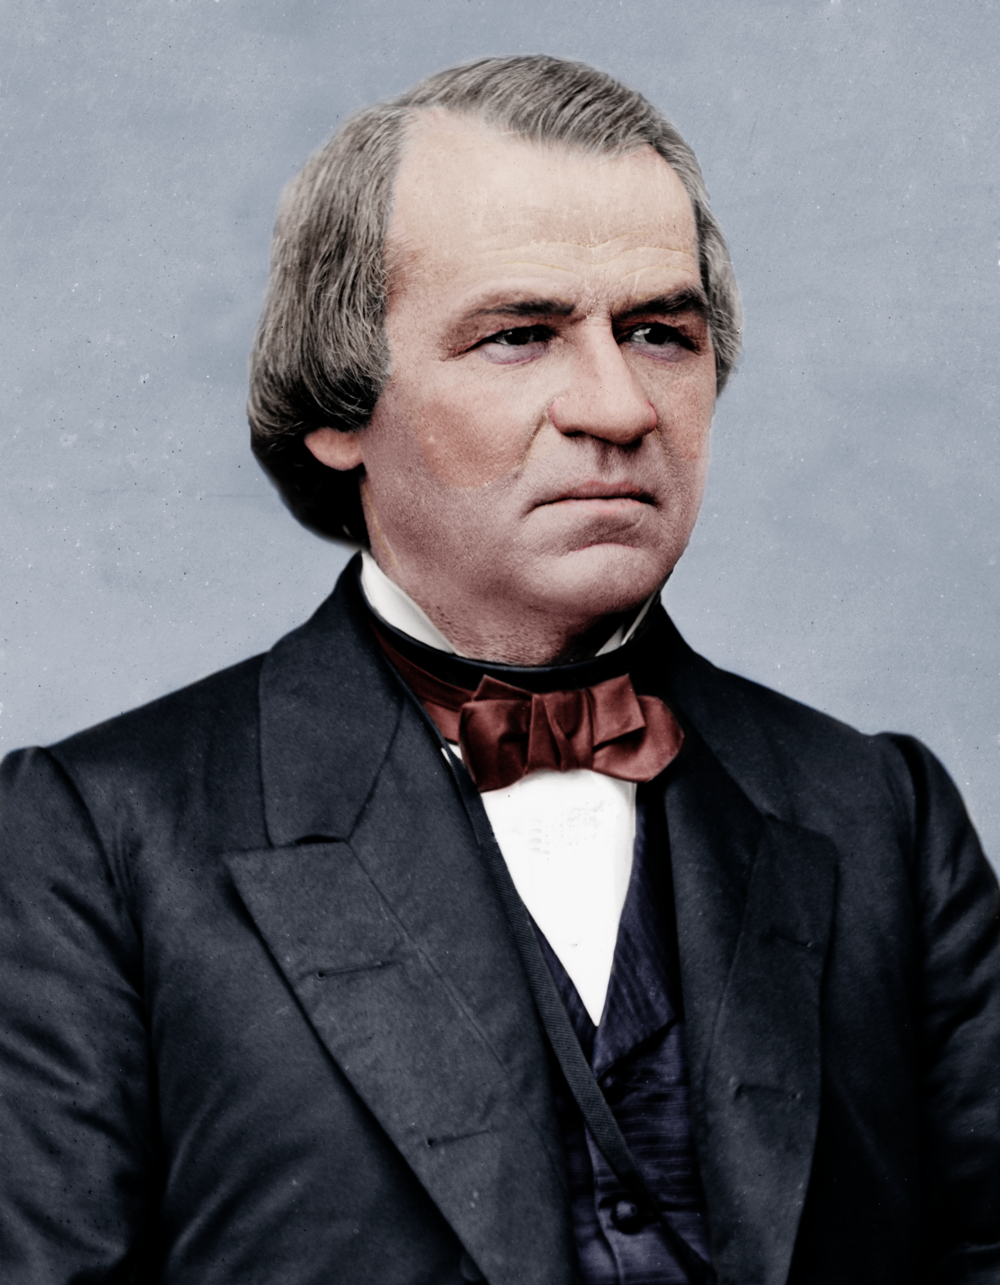 Andrew Johnson, 17th President of the United States, 1865-1869